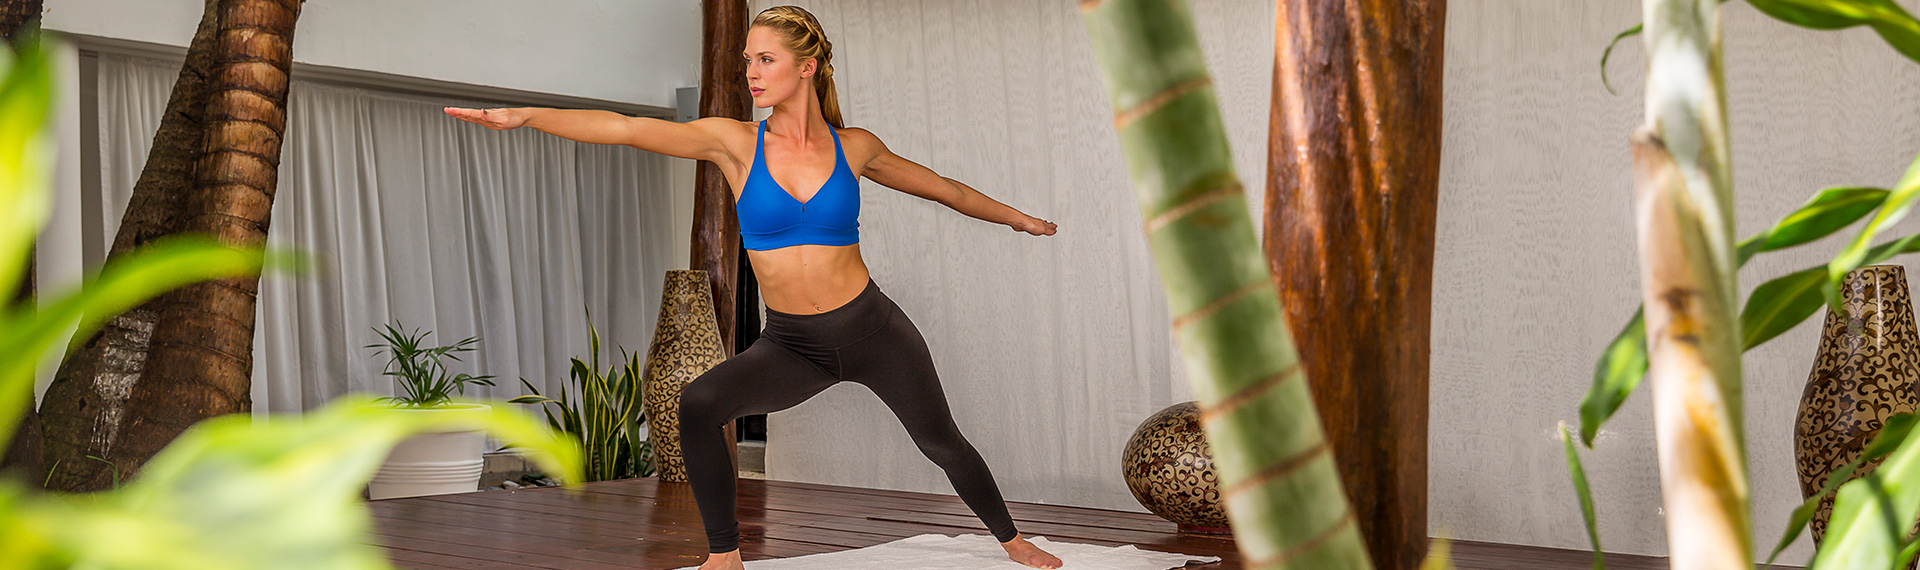 Yoga As Part of A Wellness Vacation